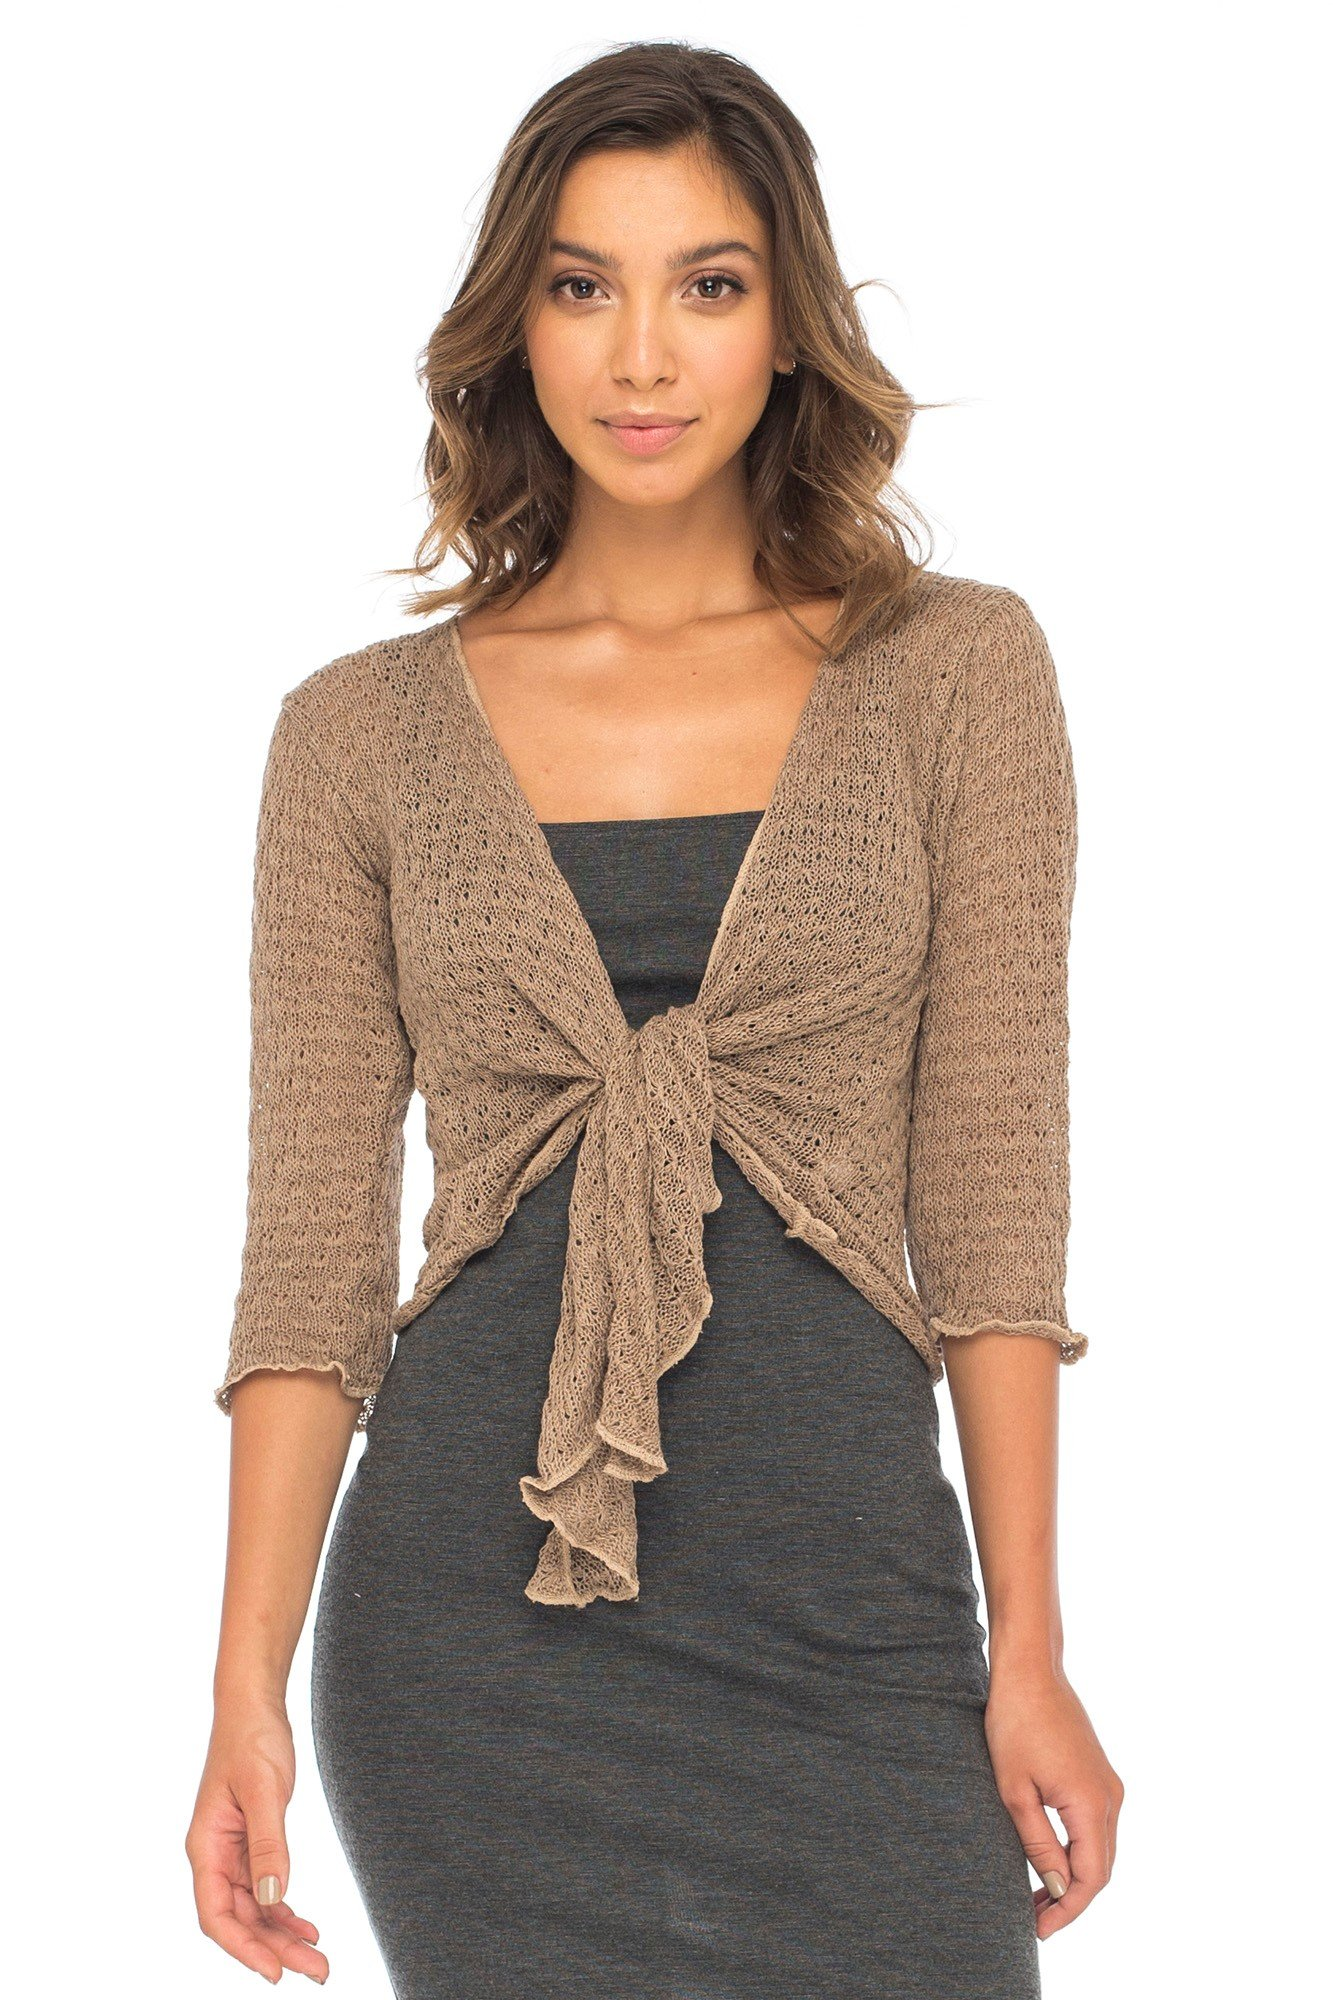 Back From Bali Womens Shrug Cardigan 100% Cotton Lightweight Knit Sweater Tie Front Beige